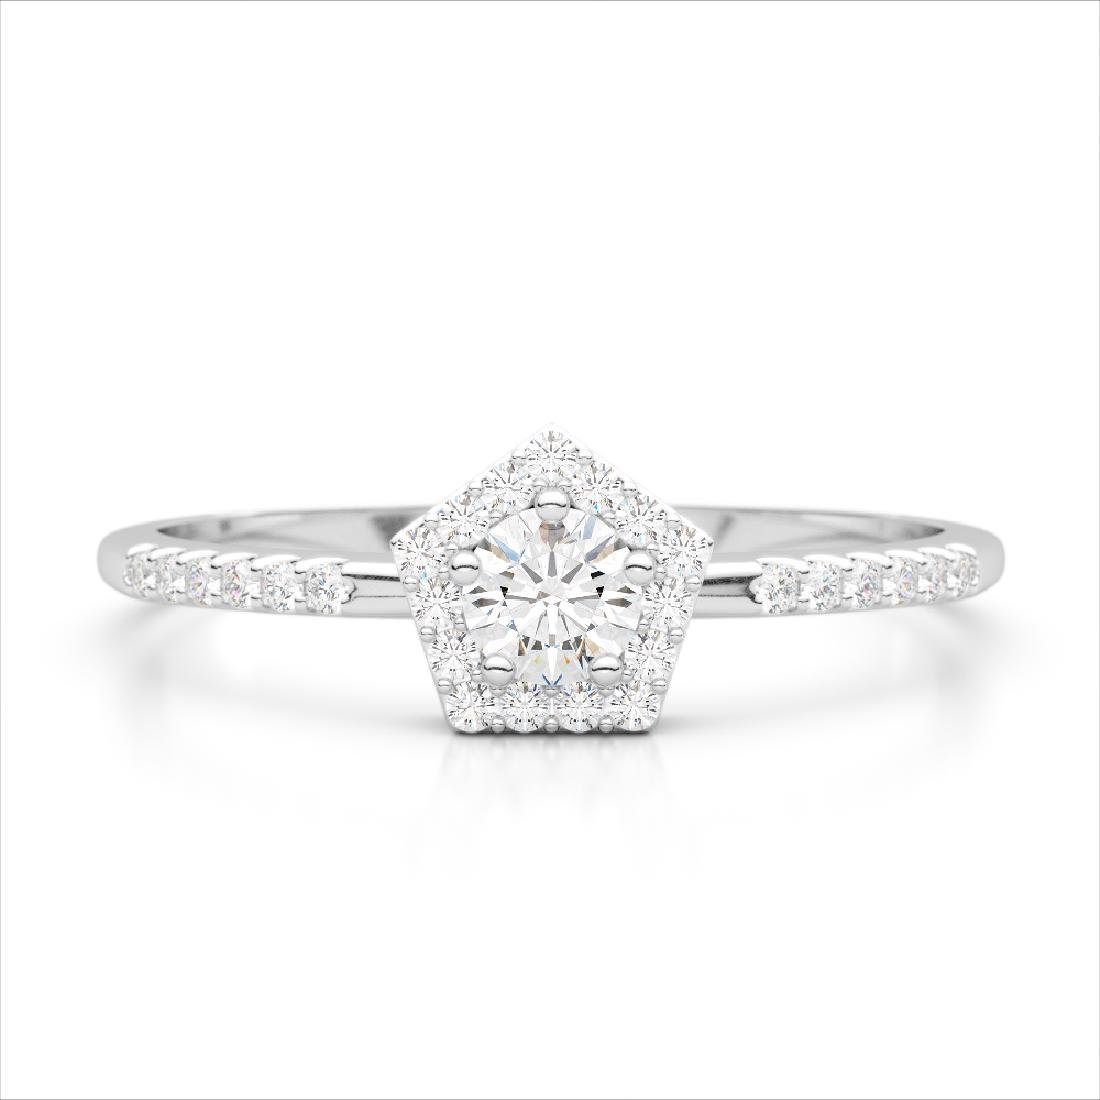 40 CTW Micro Pave VS/SI Diamond Halo Solitaire Ring 18K